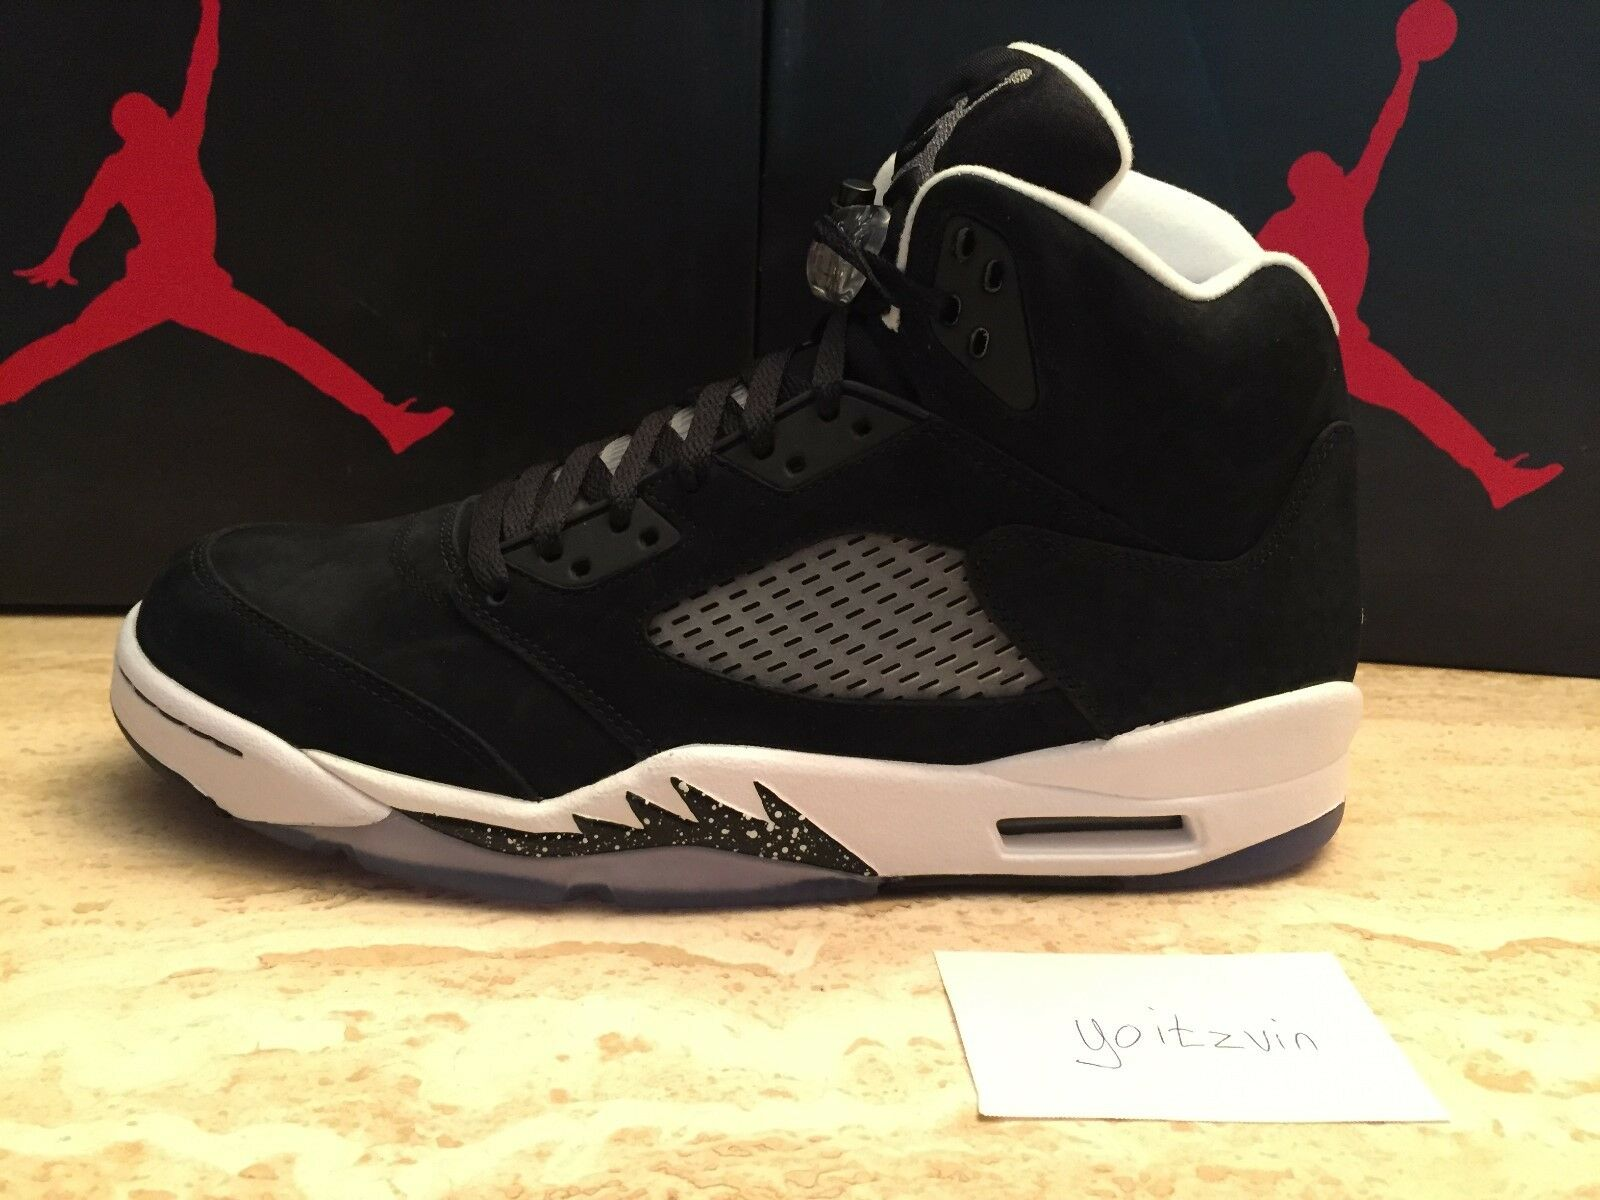 neue ds nike - air jordan v retro - nike 5 sz 11,0 oreo - 2013 (136027 035) f909be